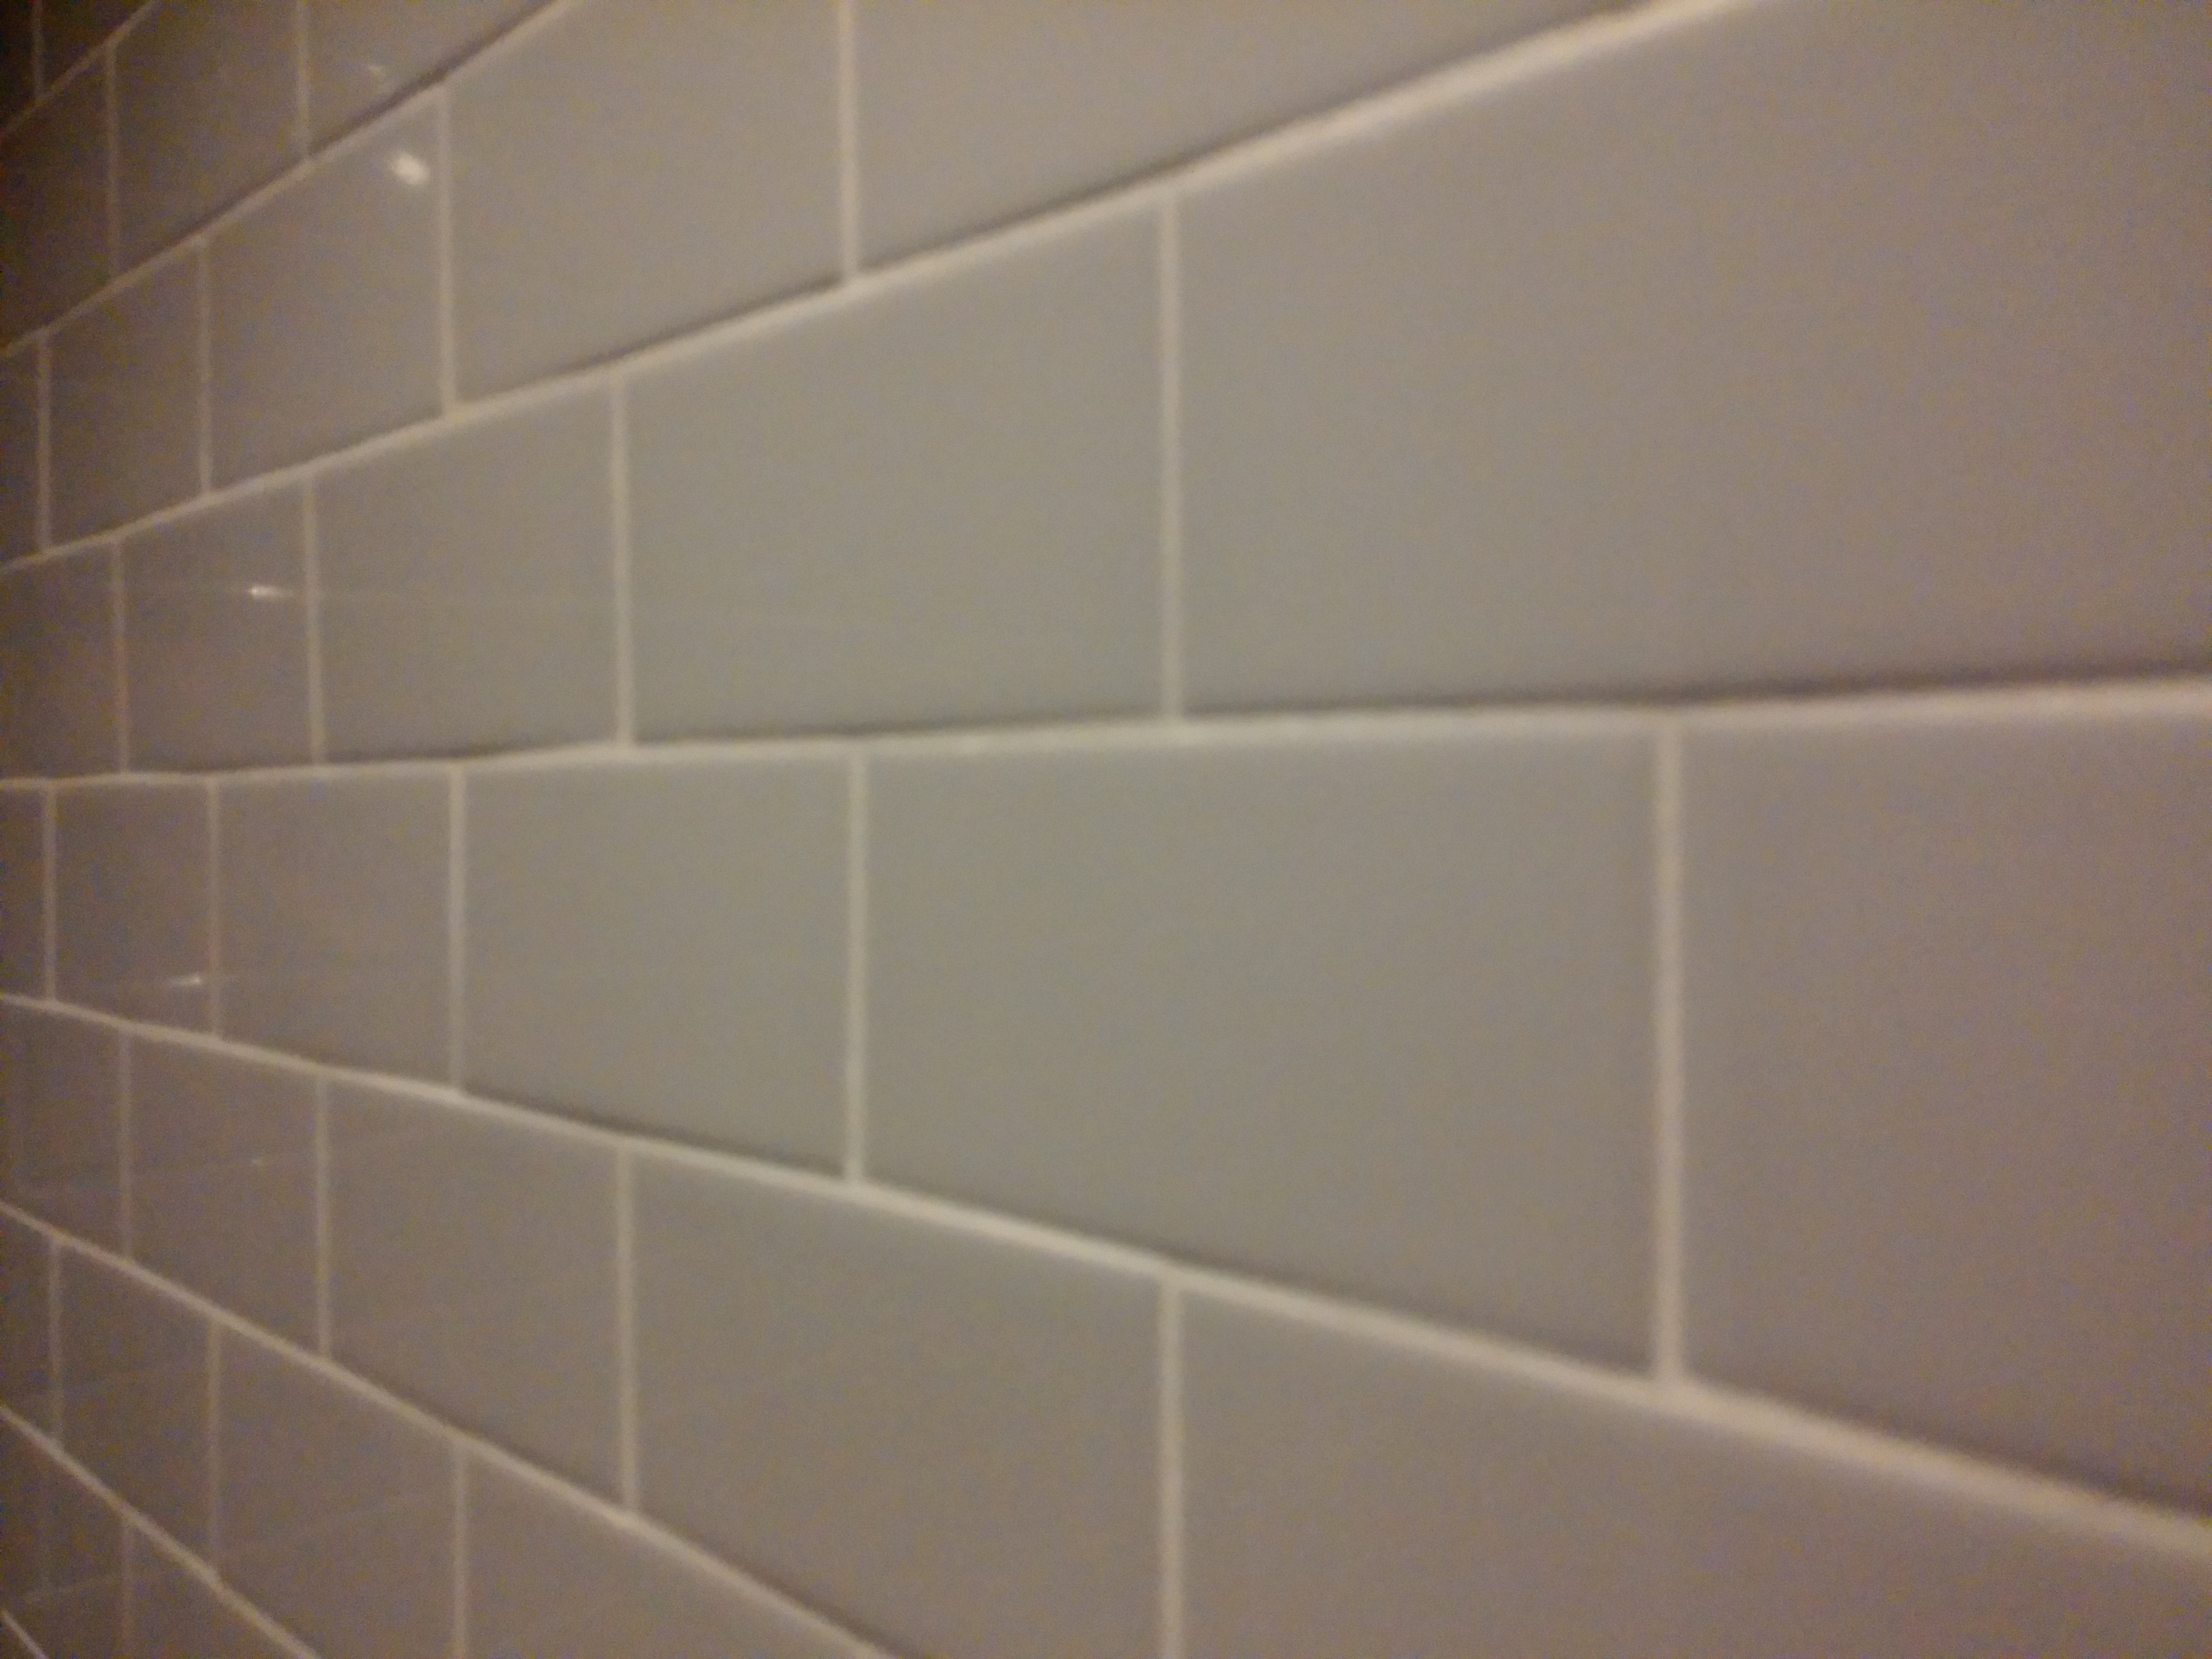 Tile Layout Ideas and Functionality - Tile Design Notes for Bathroom #2